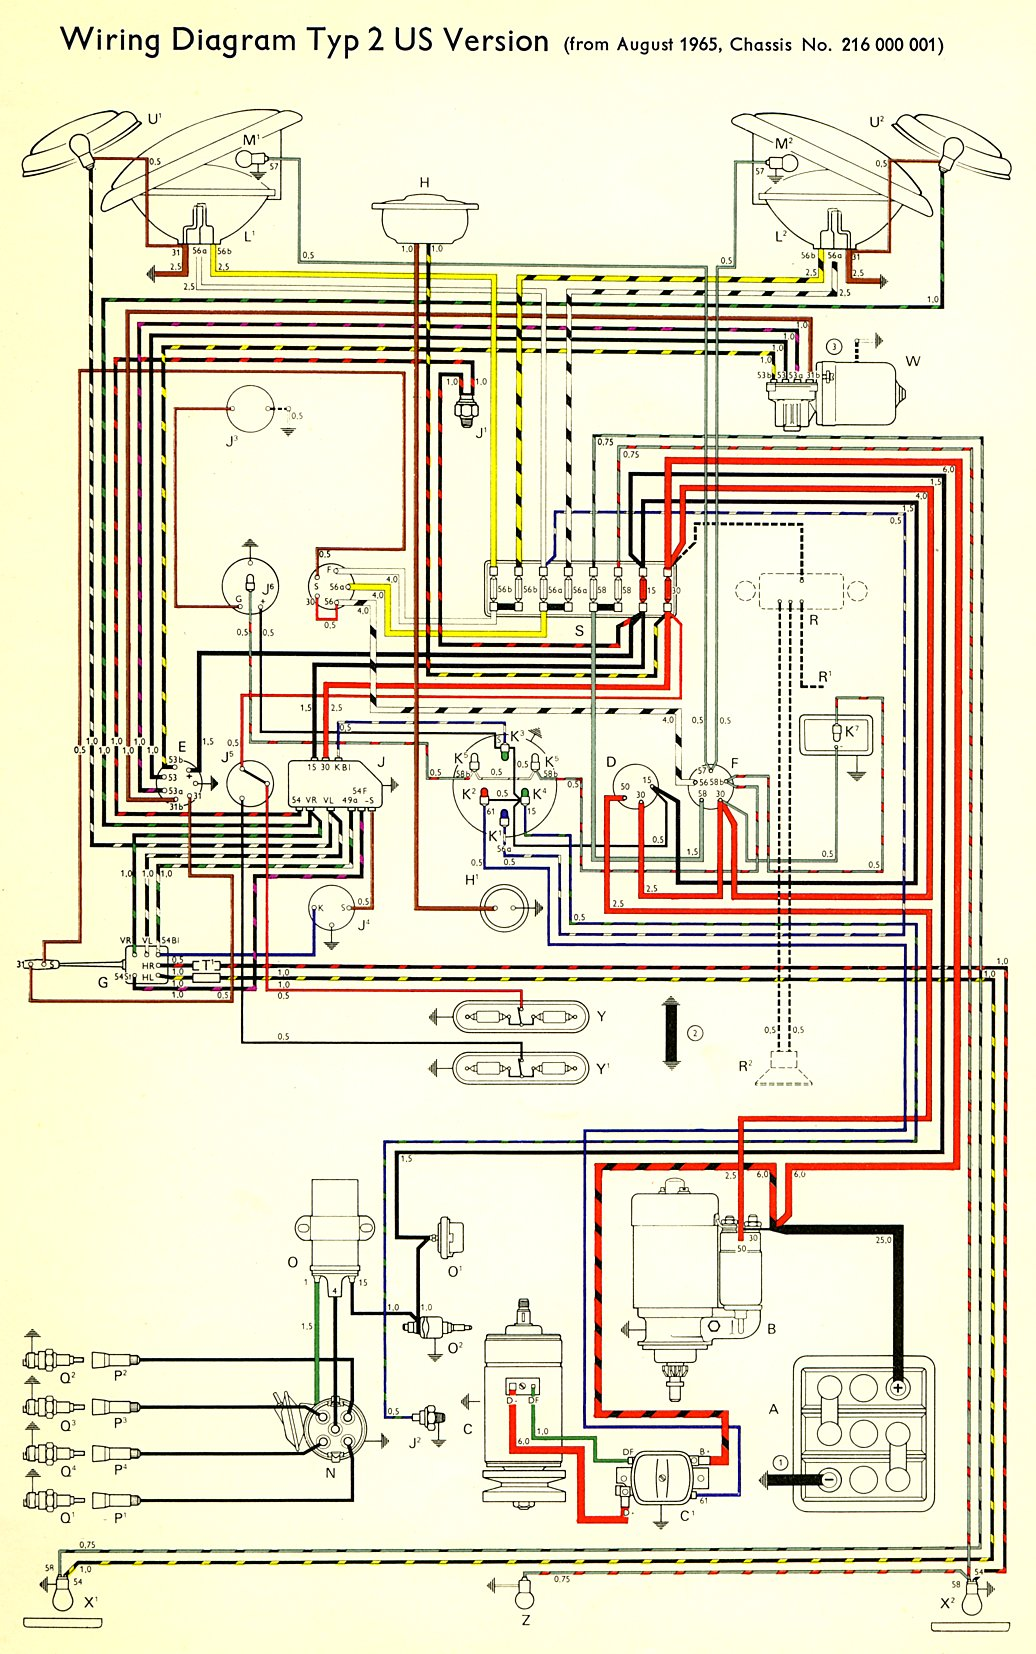 1966 bus wiring diagram usa thegoldenbug com rh thegoldenbug com 1966 vw  bus wiring diagram 1967 vw wiring diagram